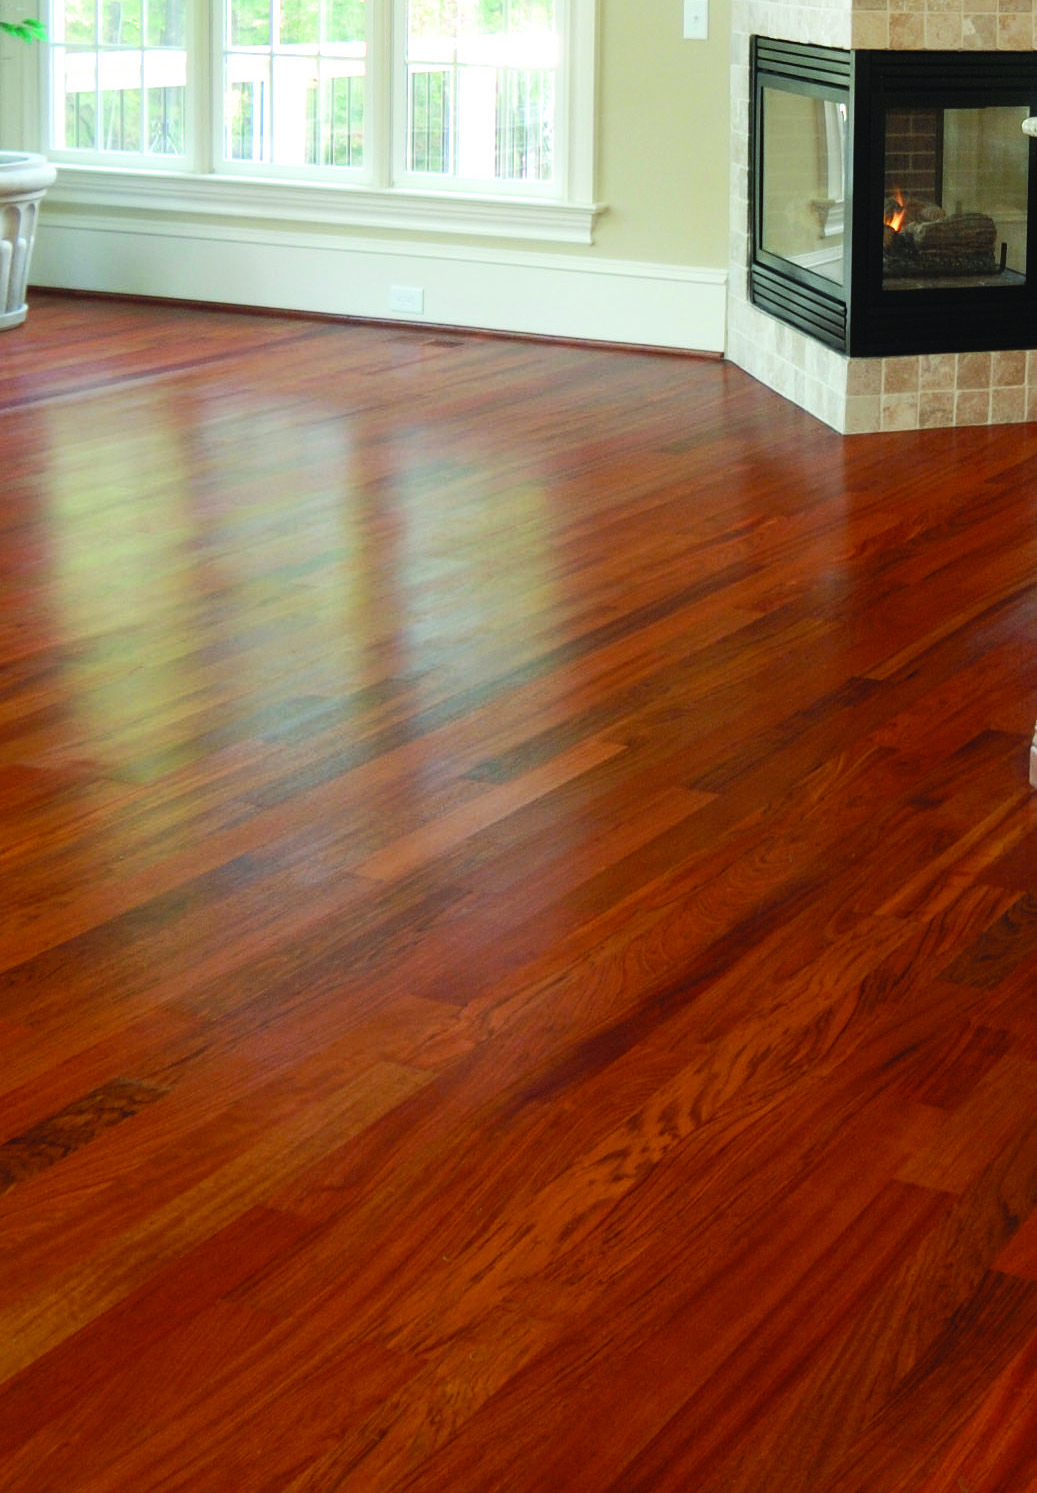 Brazilian cherry engineered hardwood flooring will fill your home